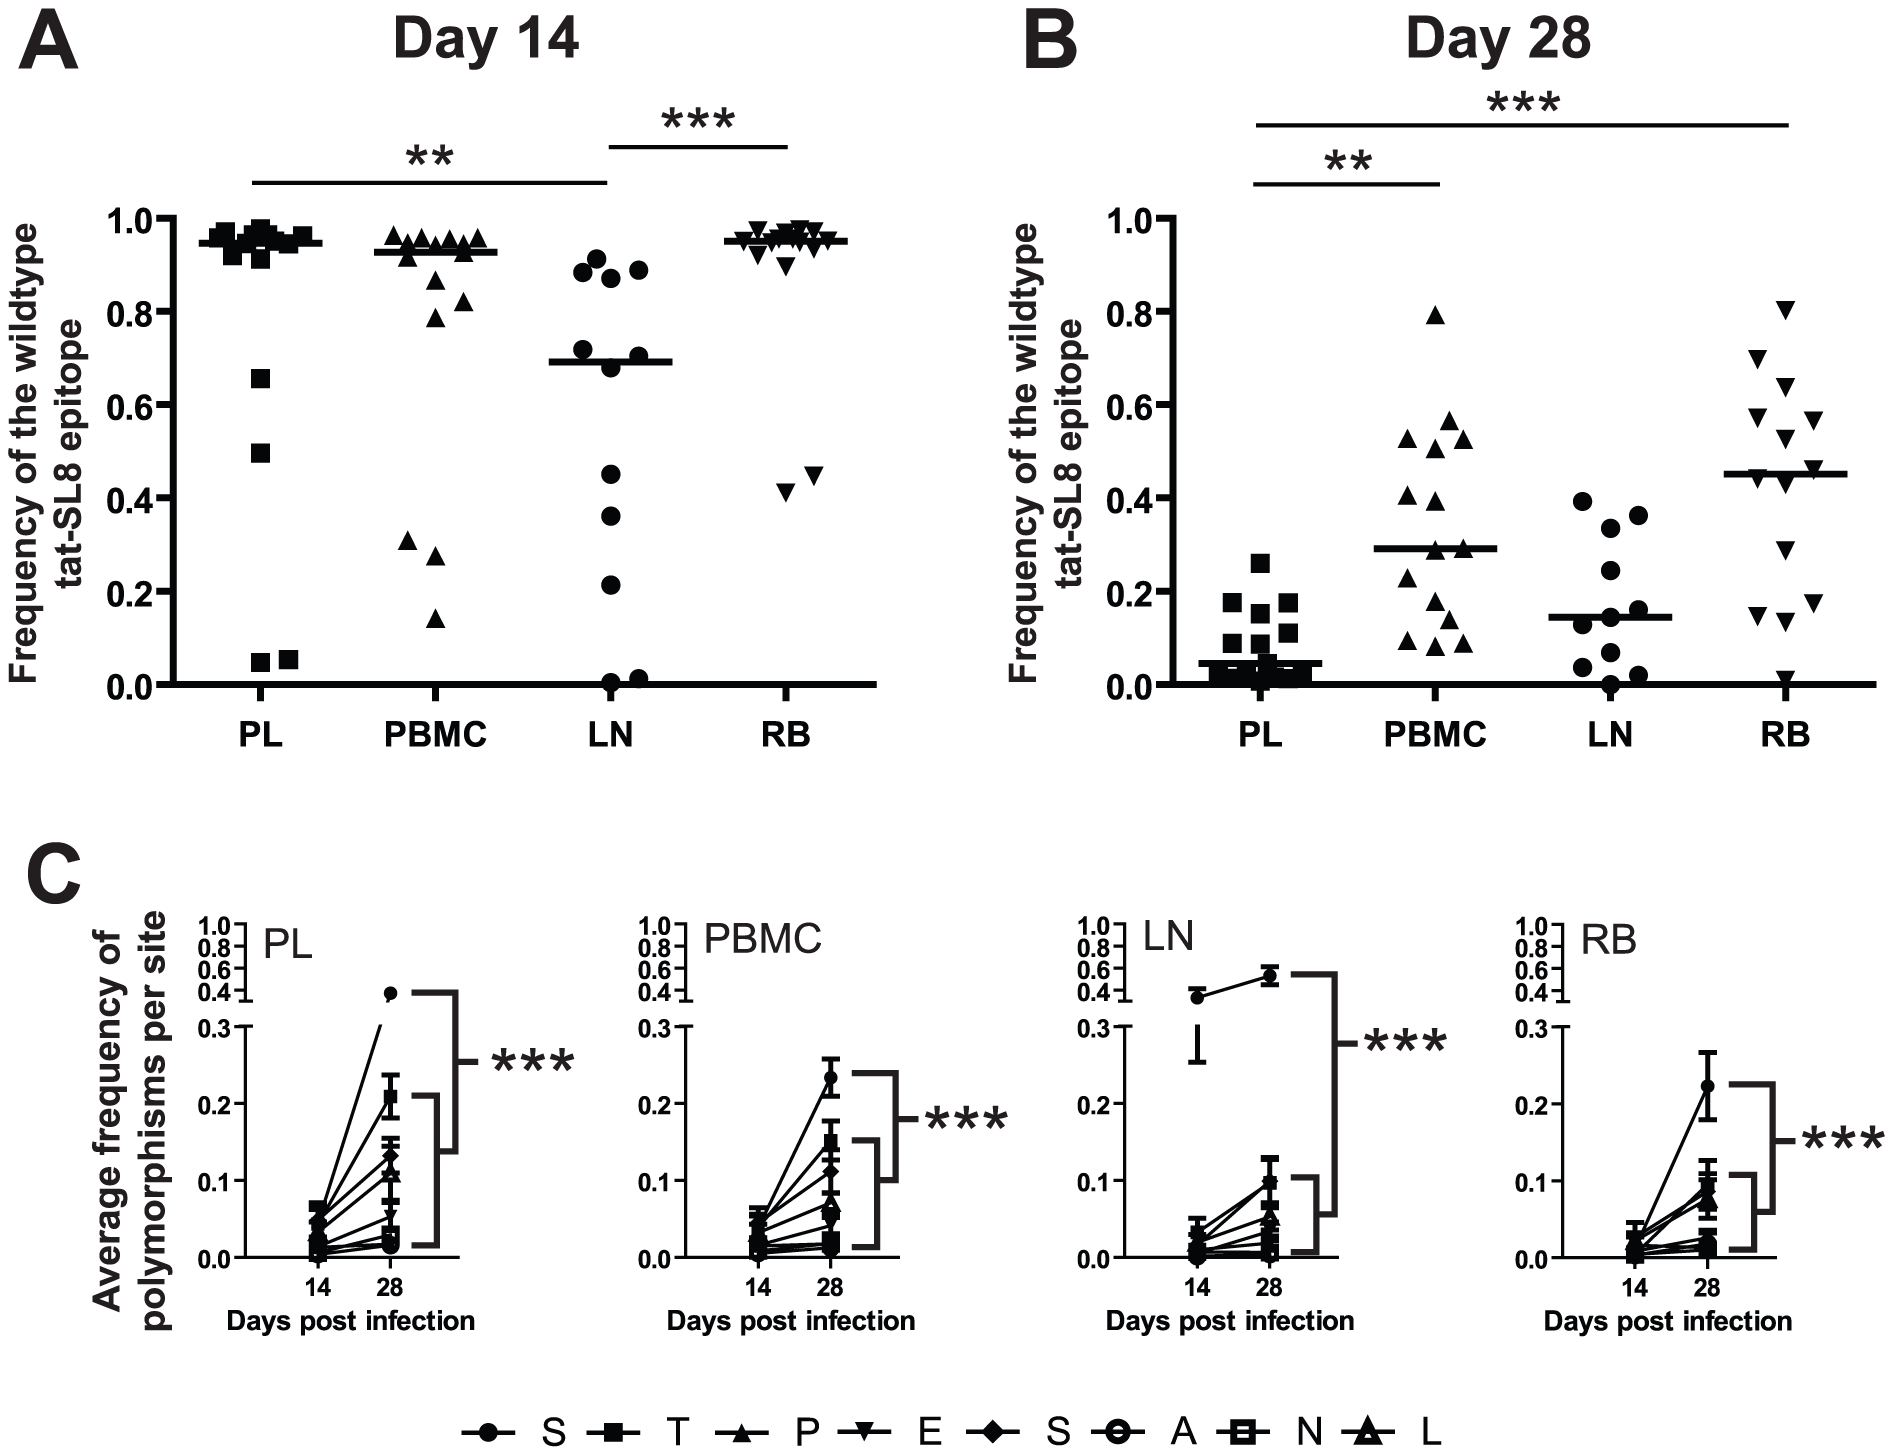 Escape in tat-SL8 was most evident in LN at day 14 post infection and variants generated there had spread to other tissues by day 28 post infection.